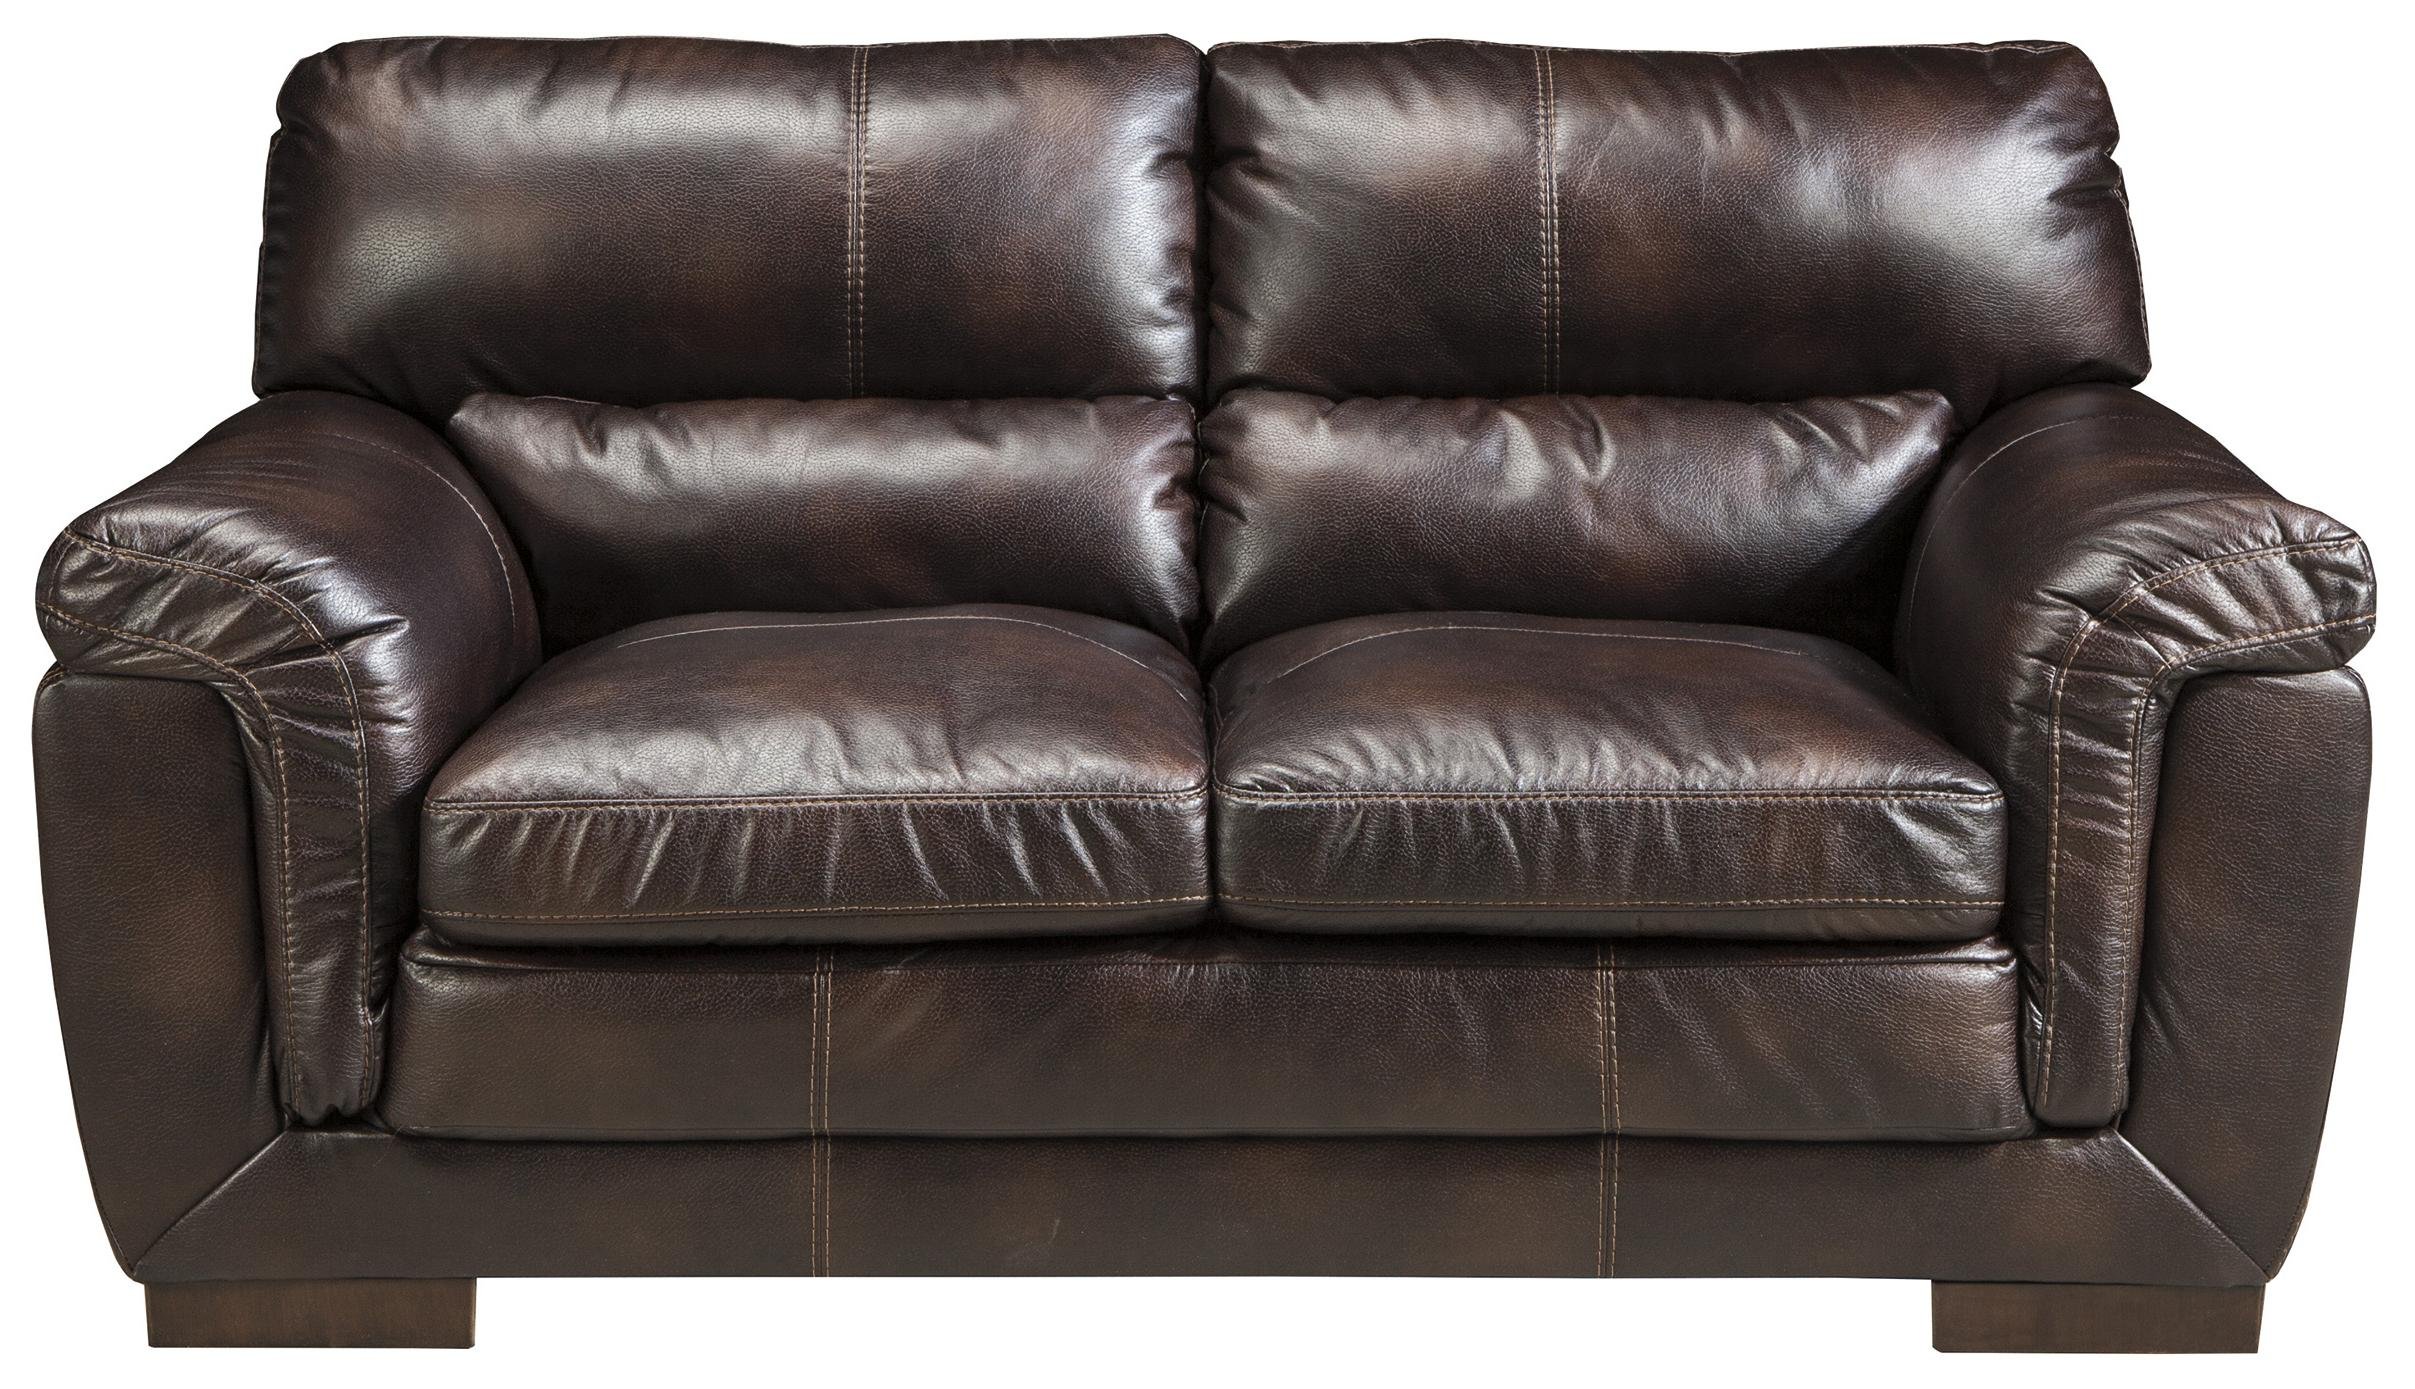 Zelladore   Canyon Contemporary Faux Leather Loveseat By Ashley Furniture